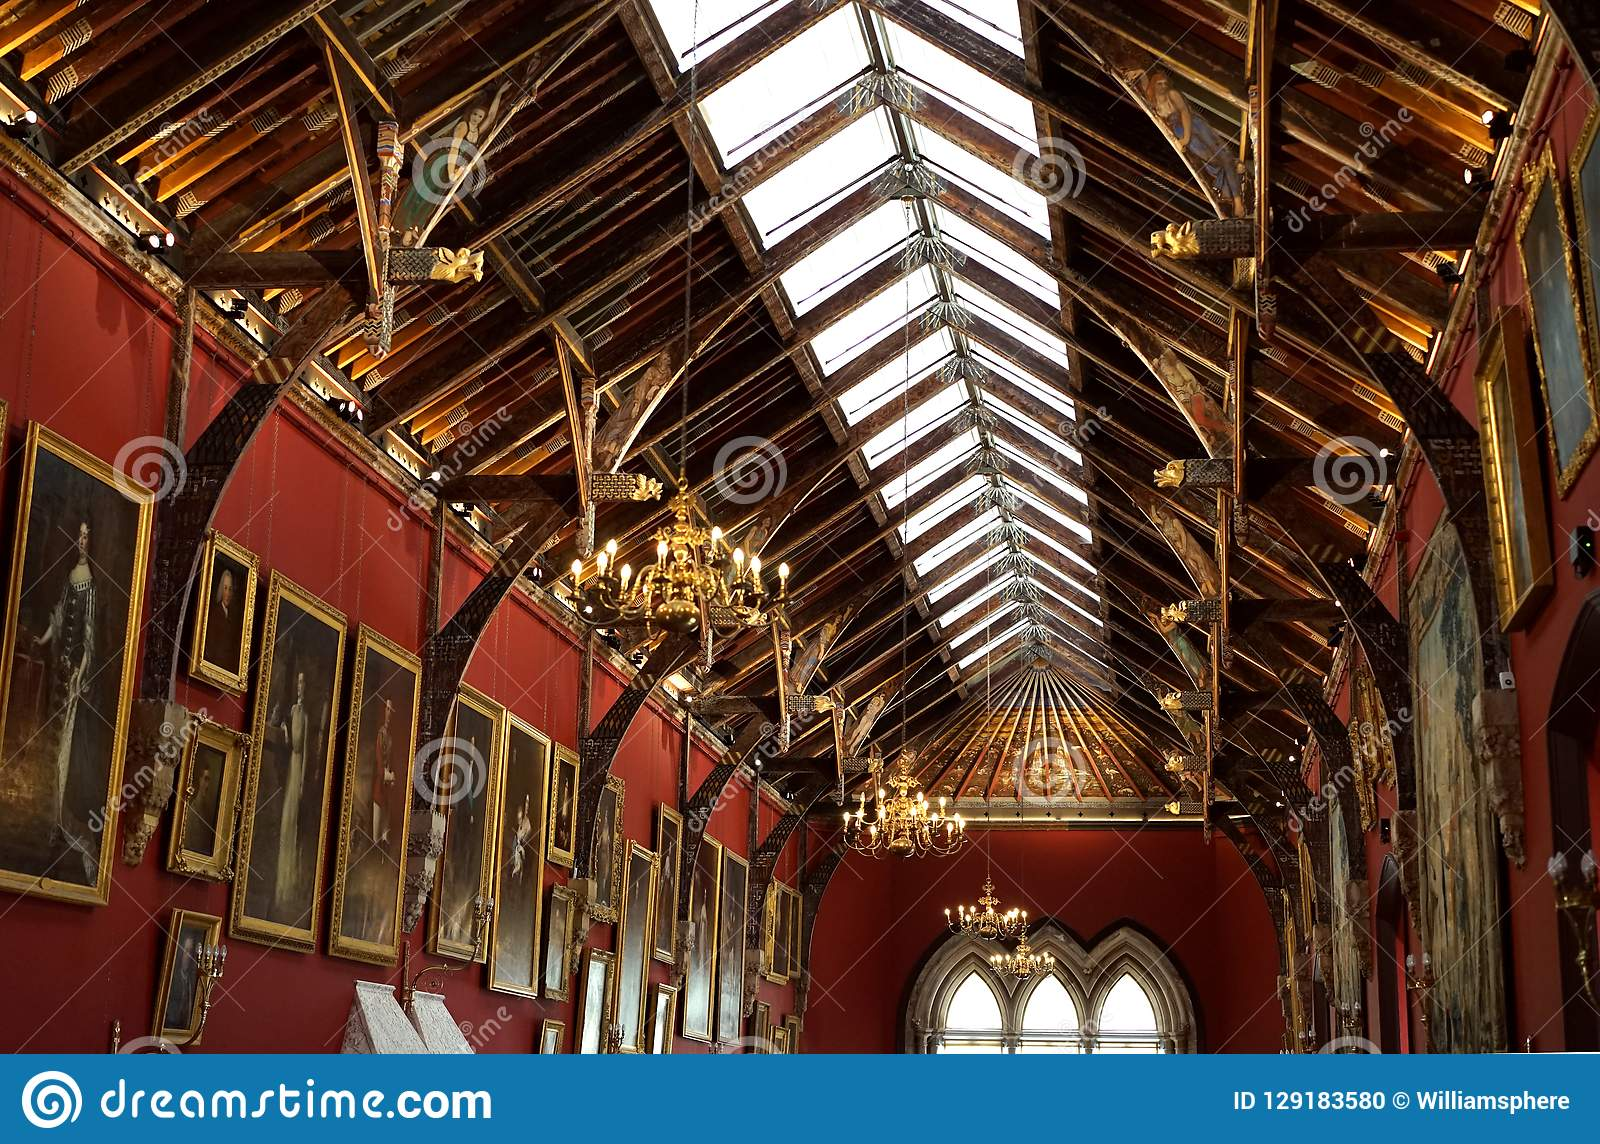 Beautiful art and architecture in rafters